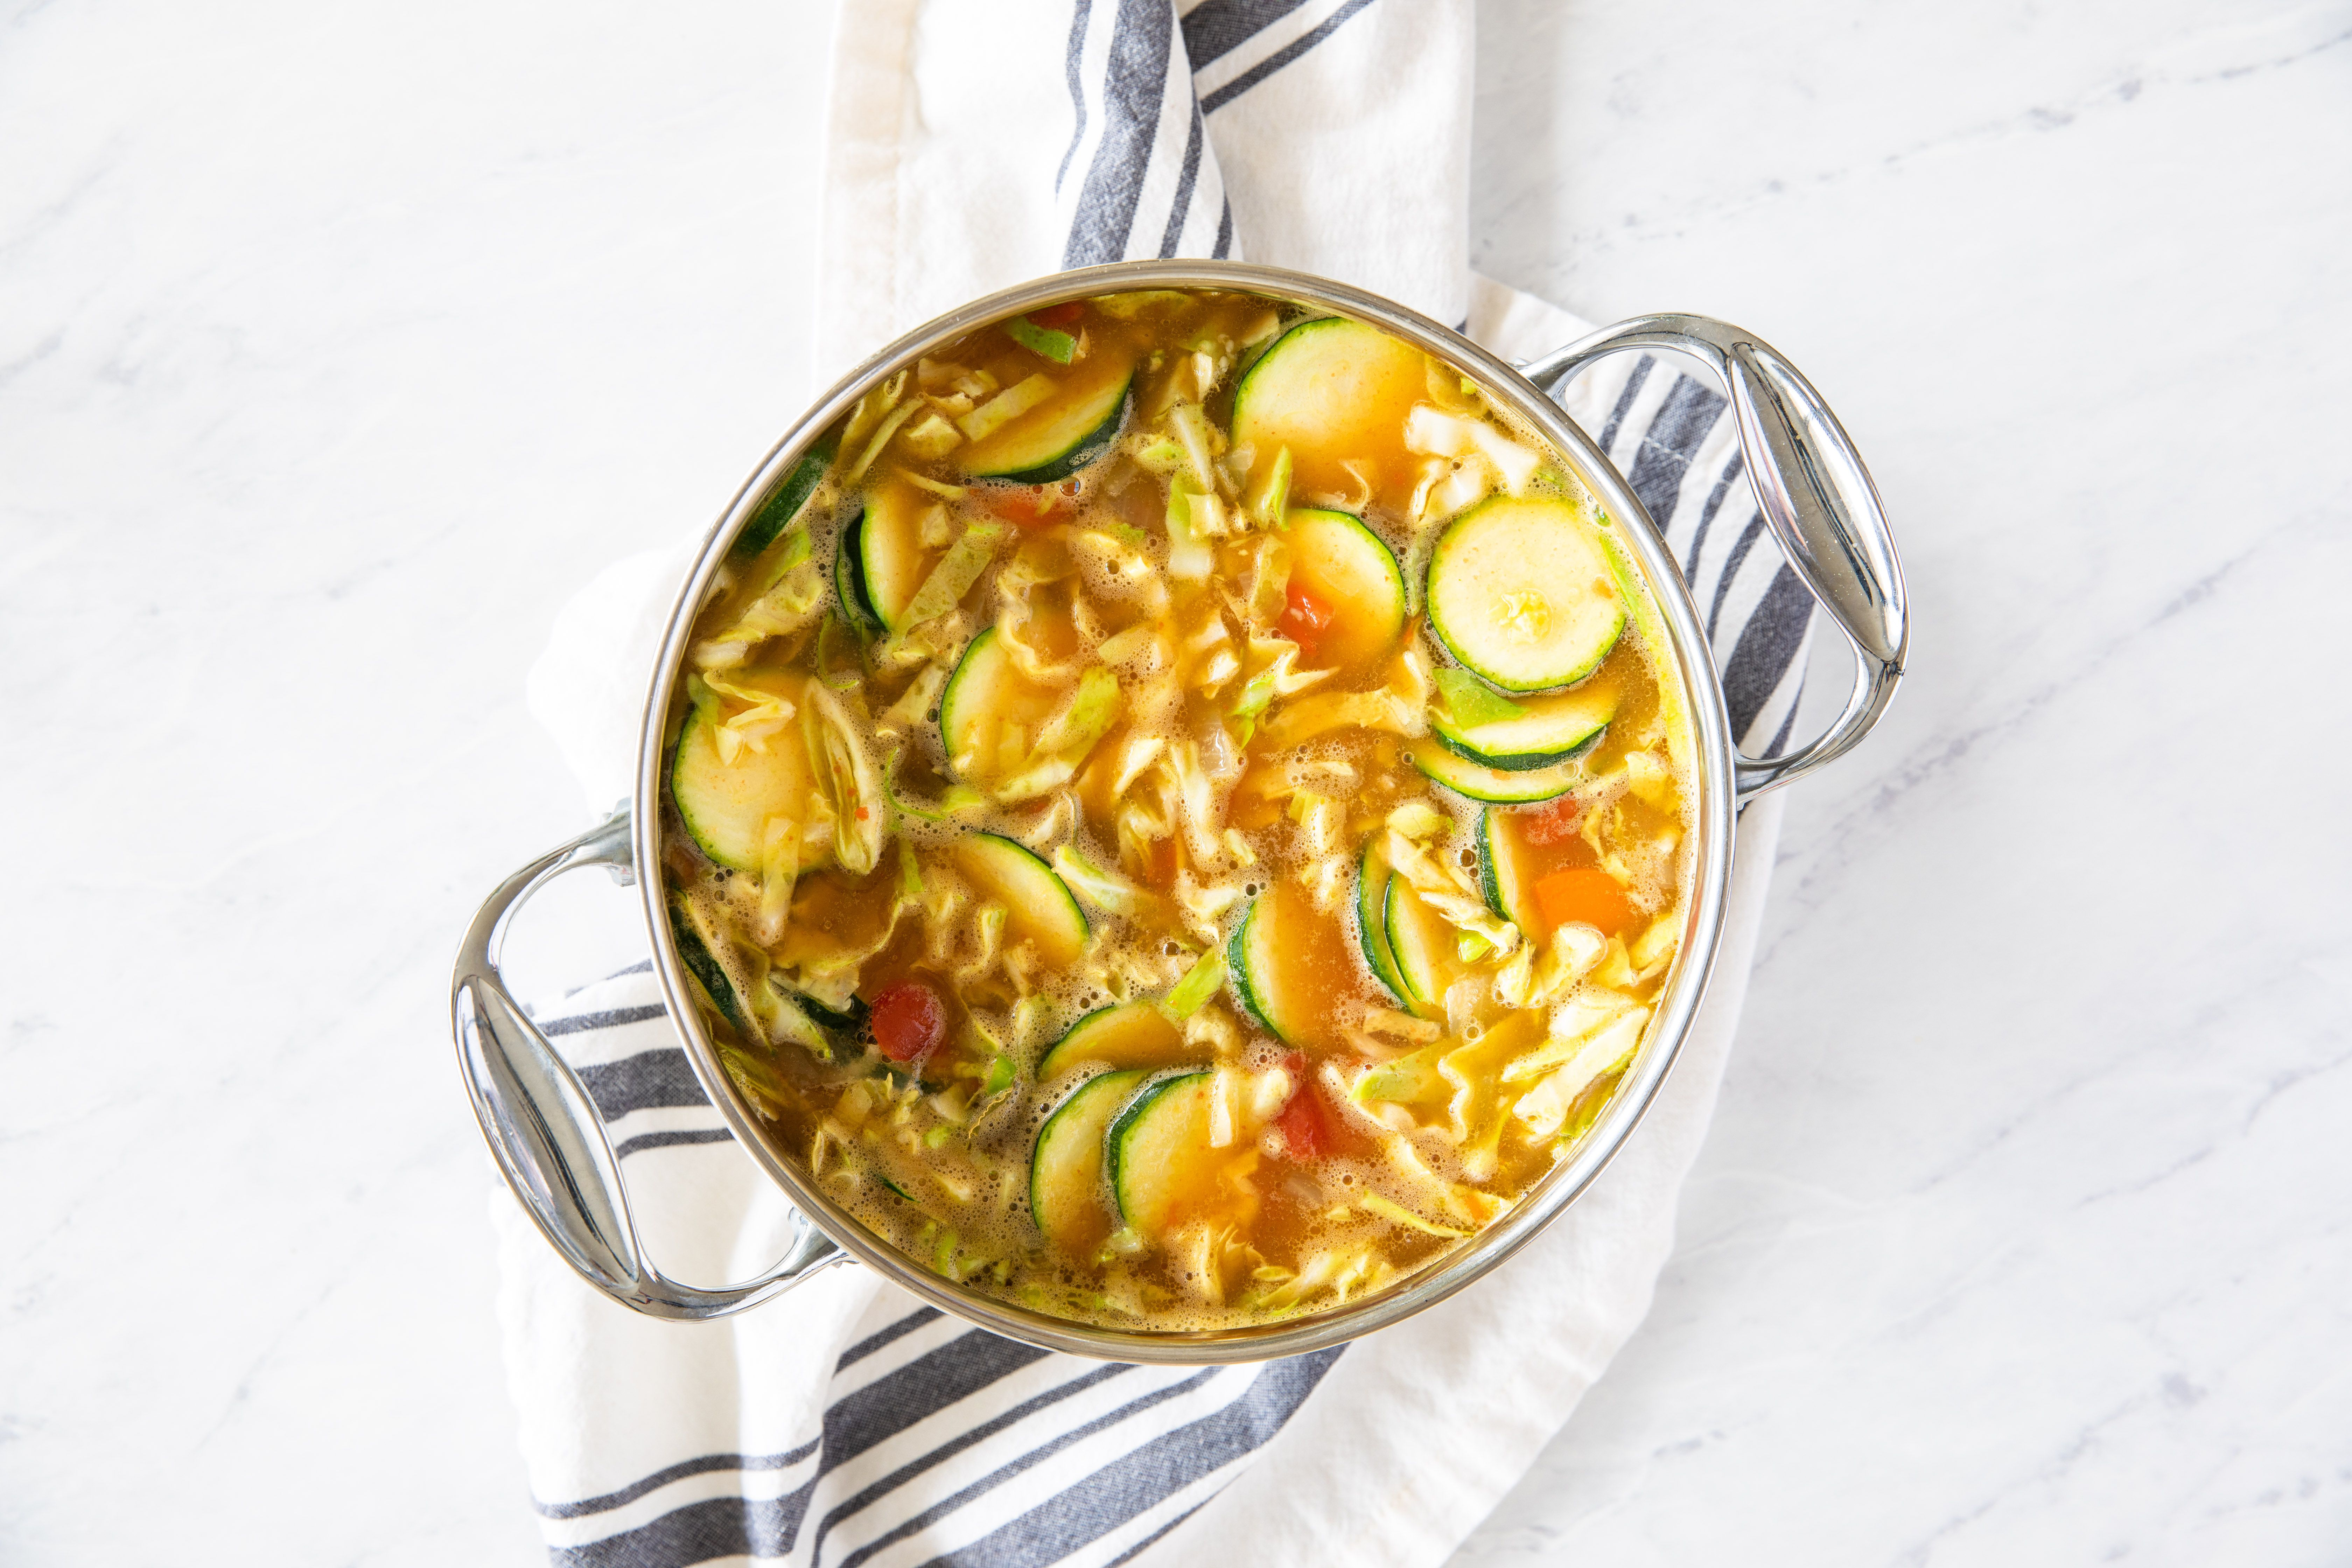 Carefully add in vegetable broth